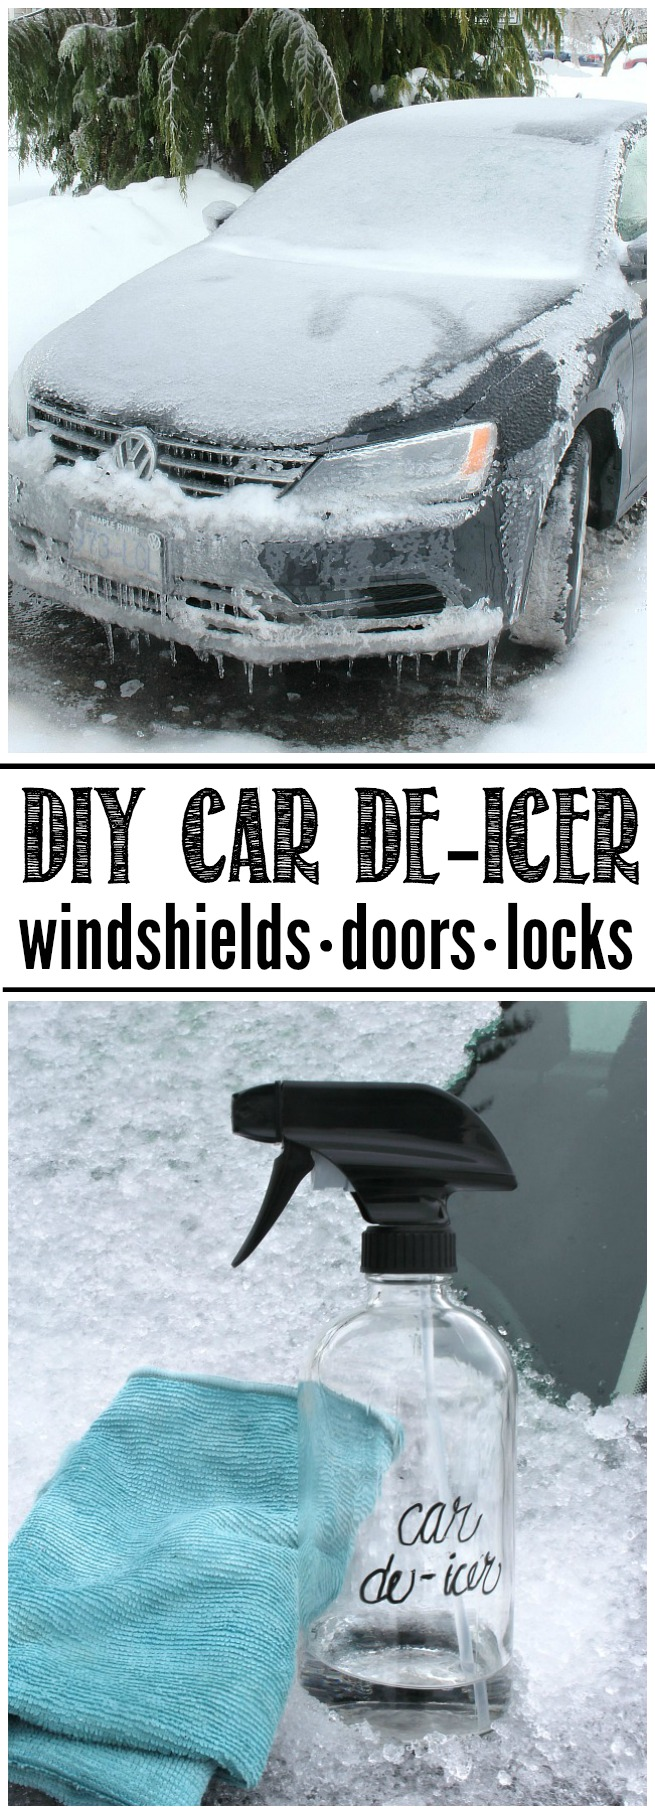 DIY Car De-Icer. This simple trick works in no time to remove ice from windshields, doors, and locks.